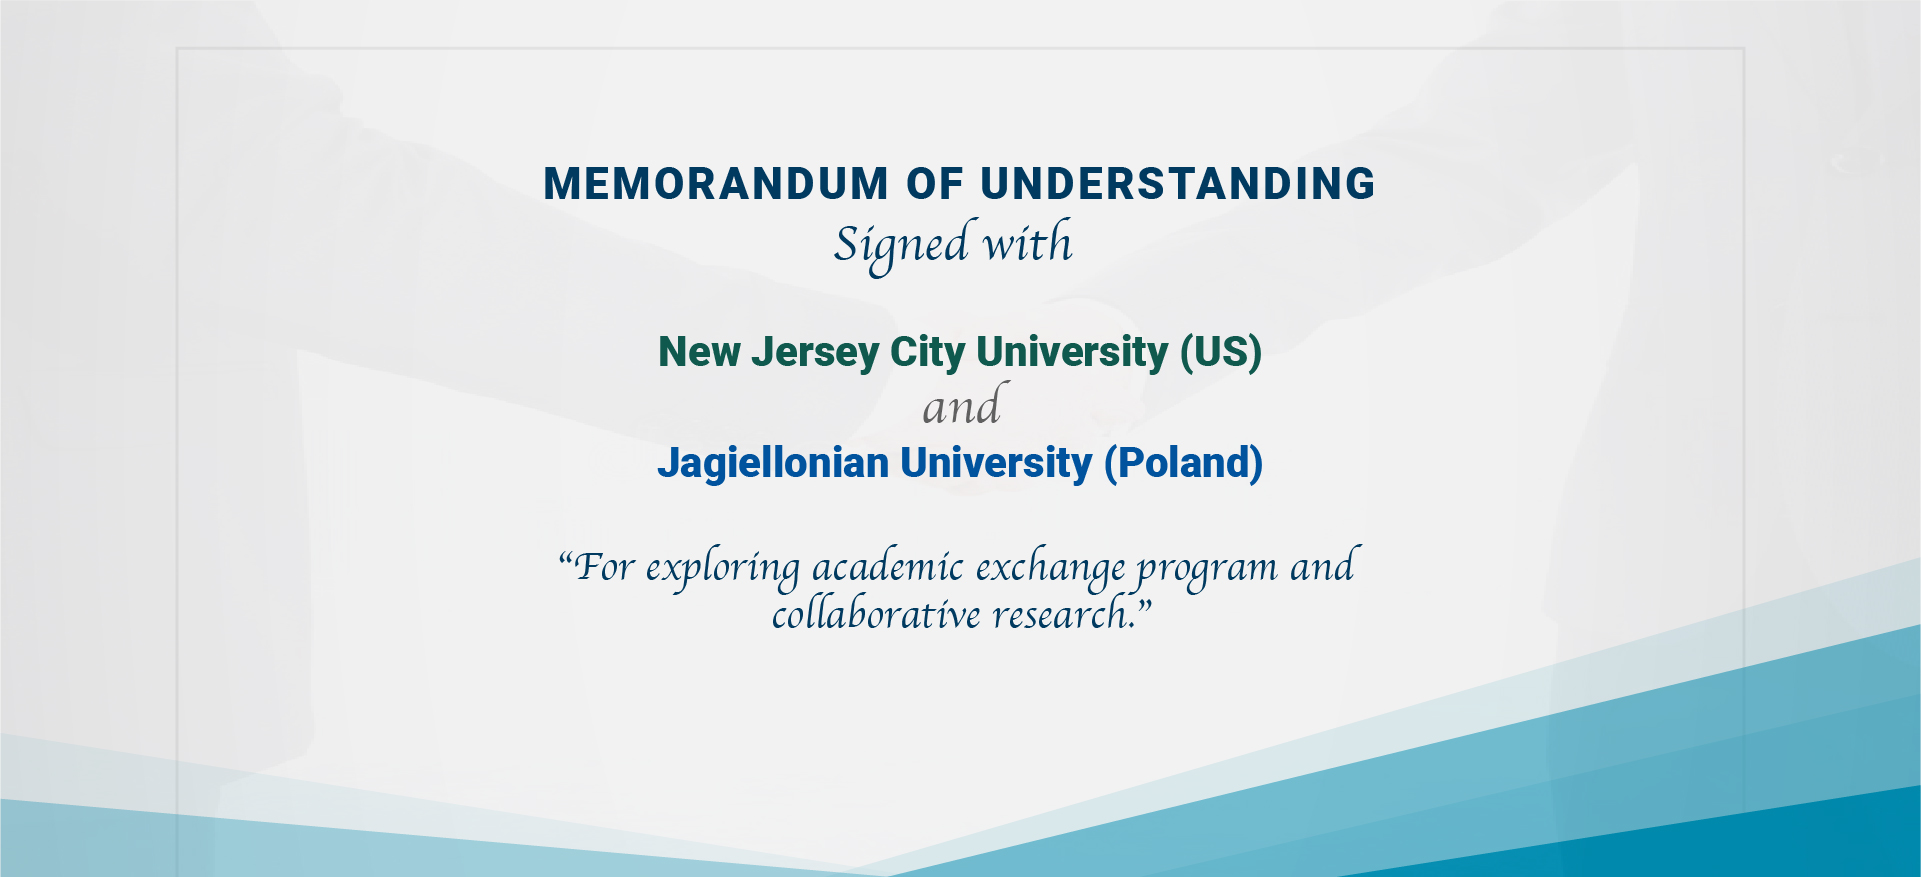 Memorandum of understanding signed with new jersey city university (US) and jagiellonian universuty  (poland)